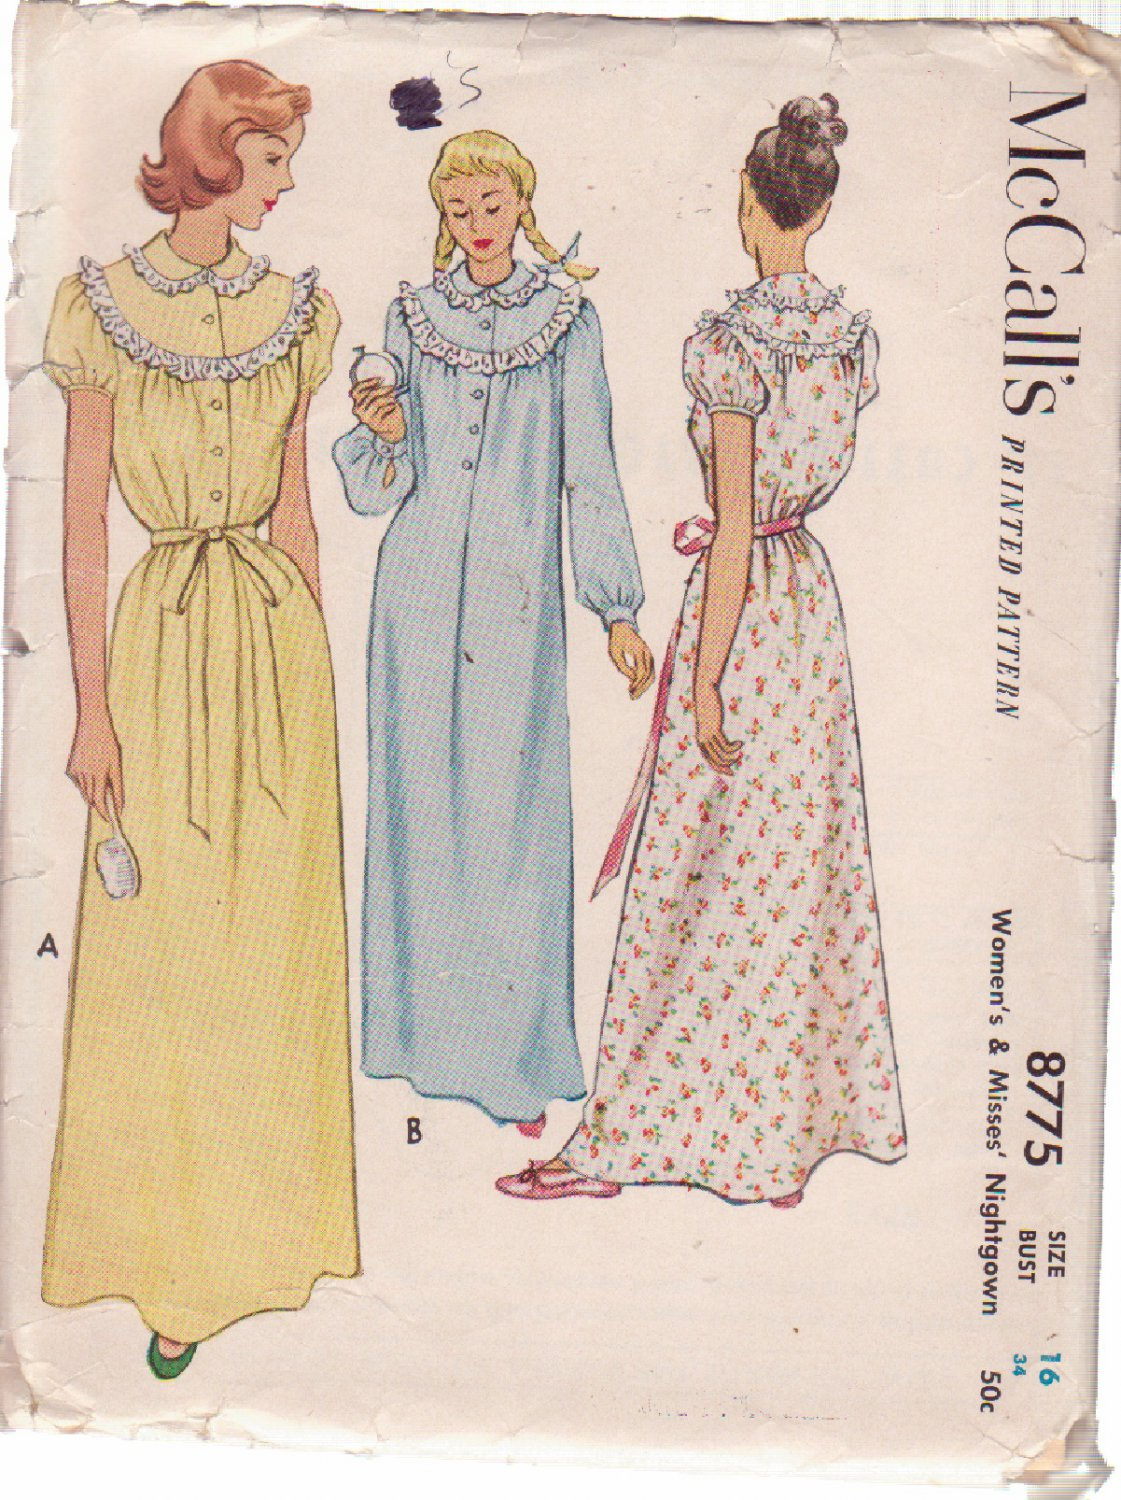 McCALL'S VINTAGE PATTERN 8775 MISSES' NIGHTGOWN IN 2 VARIATIONS SIZE 16